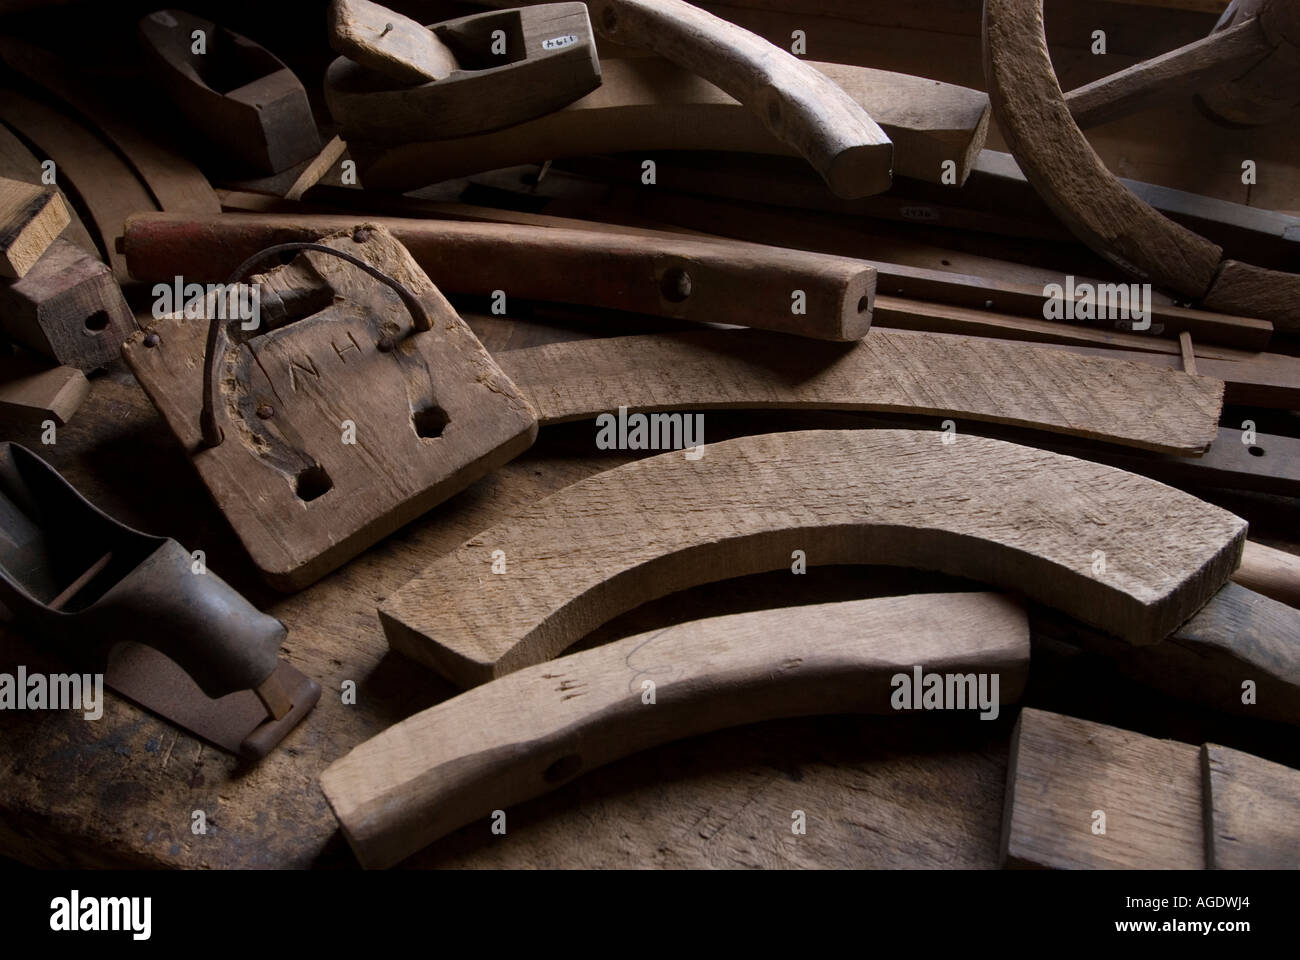 Stock Image Of Tools And Wood Templates Used For Making Wagon Wheels